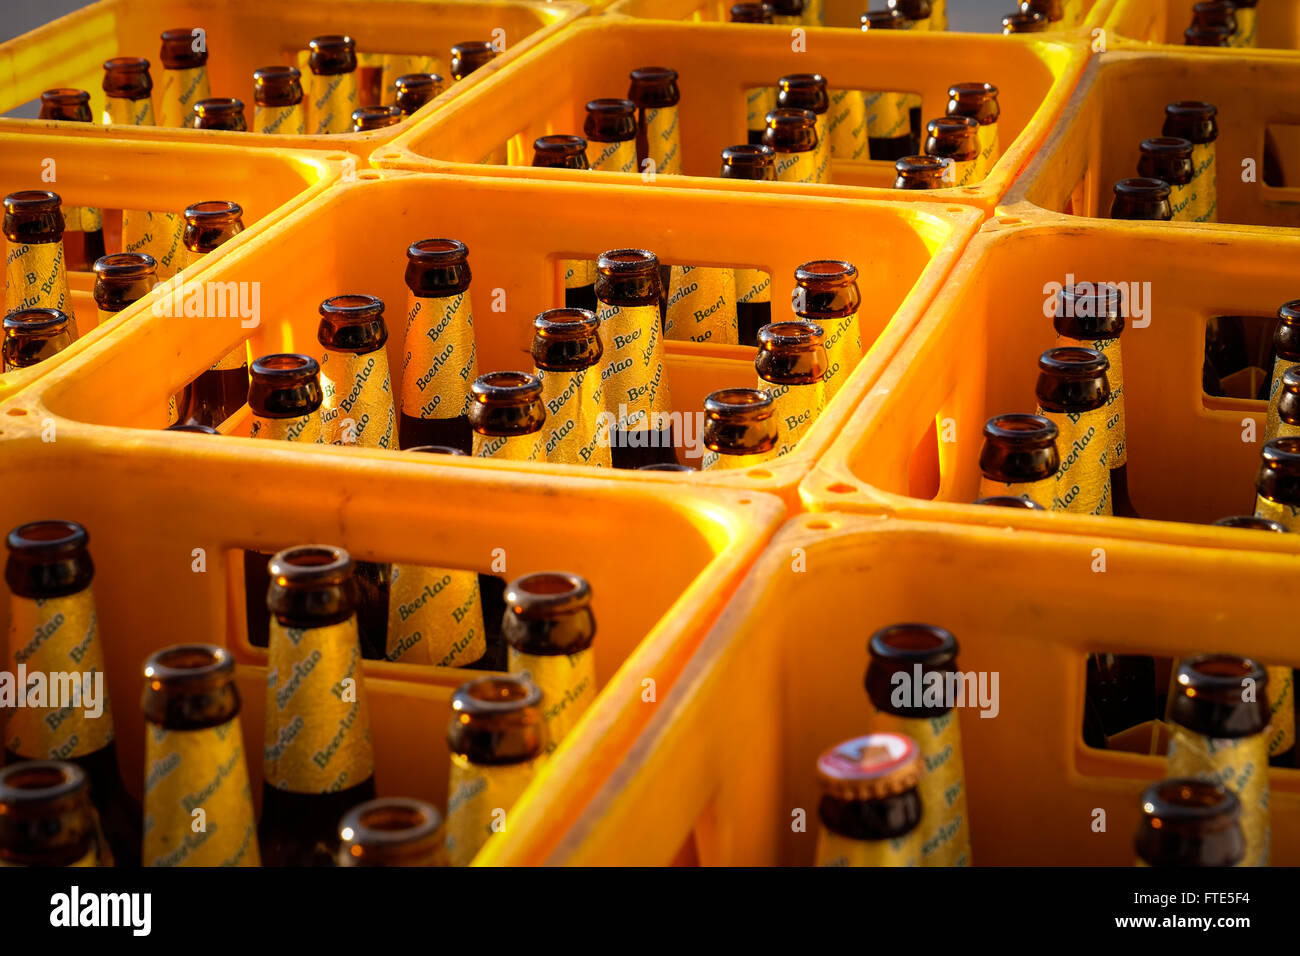 Crates of empty Beerlao bottles on the back of a truck in Luang Prabang, Lao PDR. - Stock Image